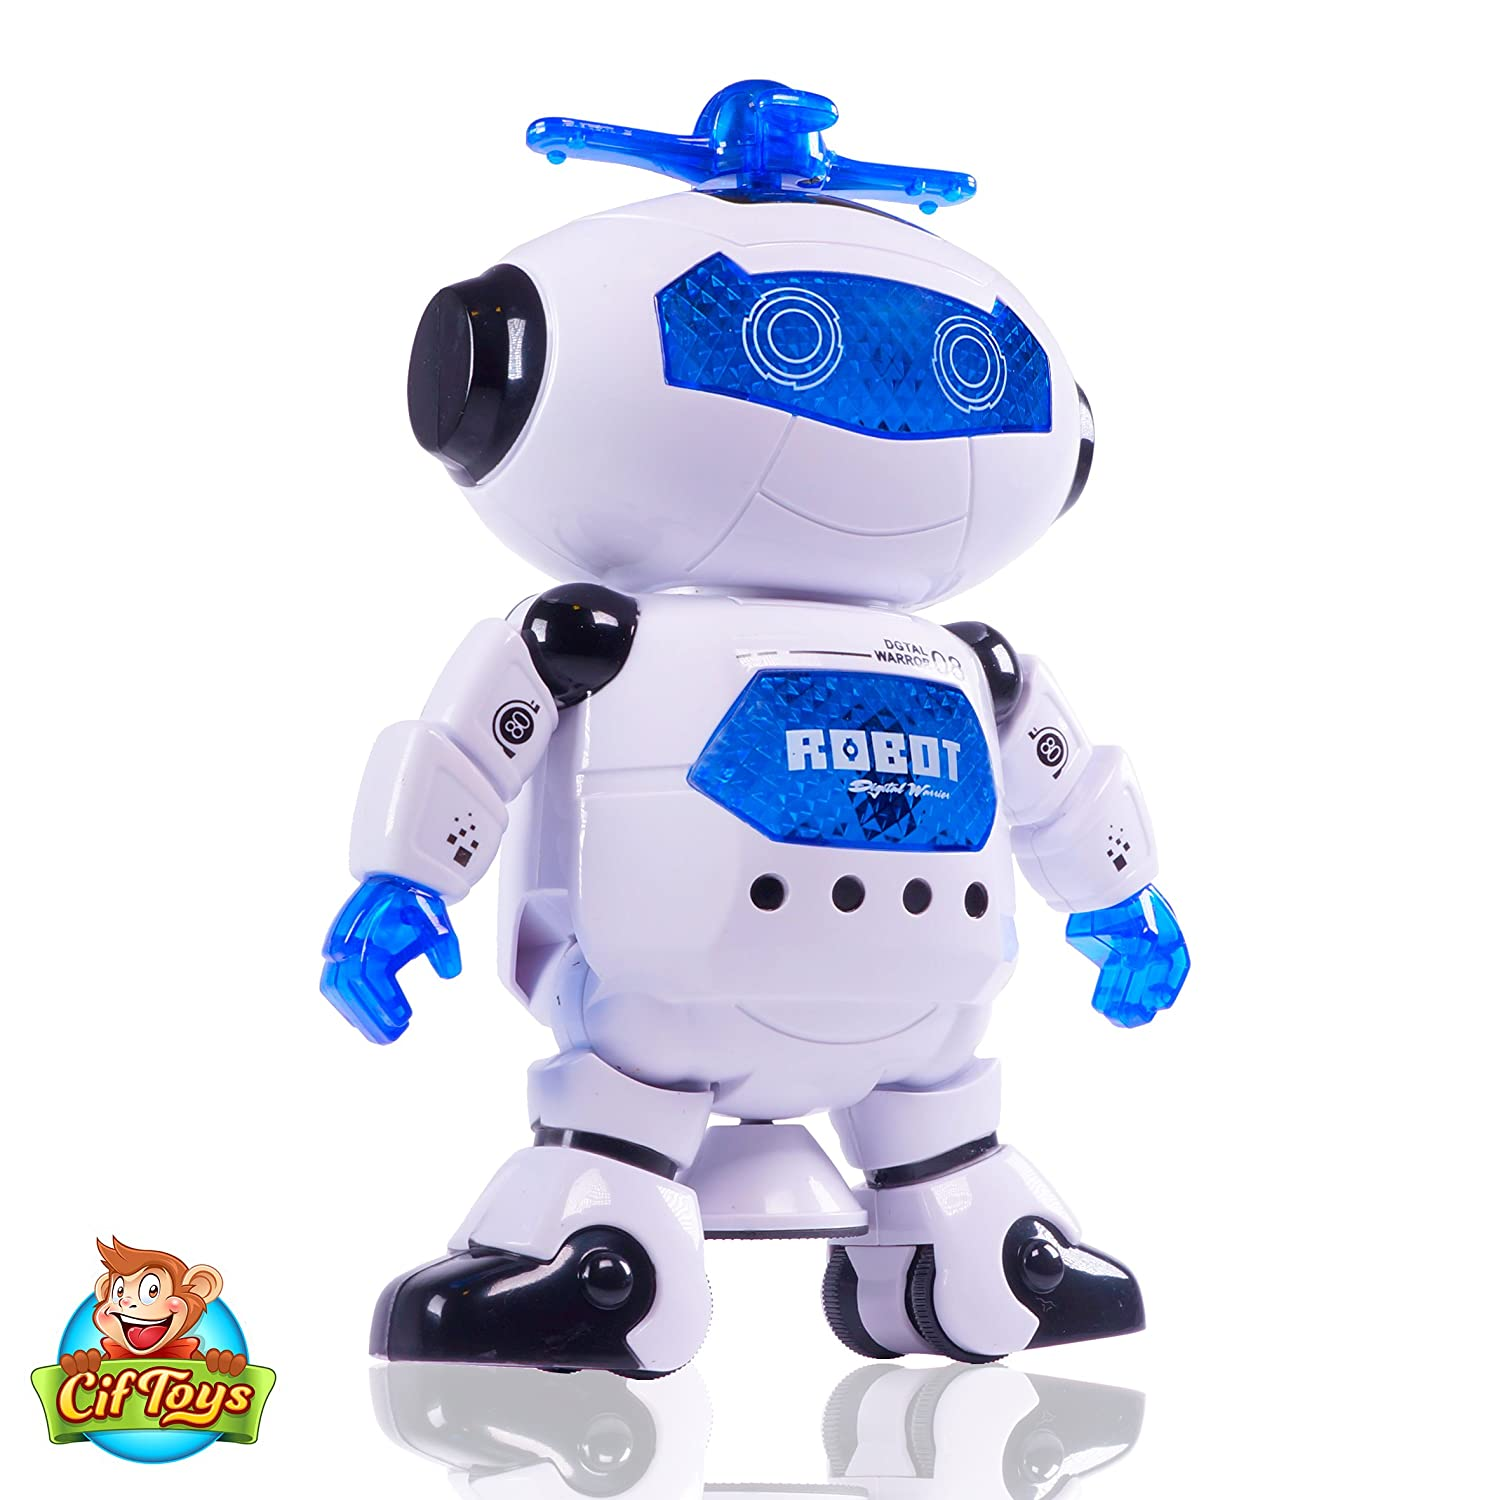 Amazon CifToys Electronic Dancing Robot Toy For Kids Boys